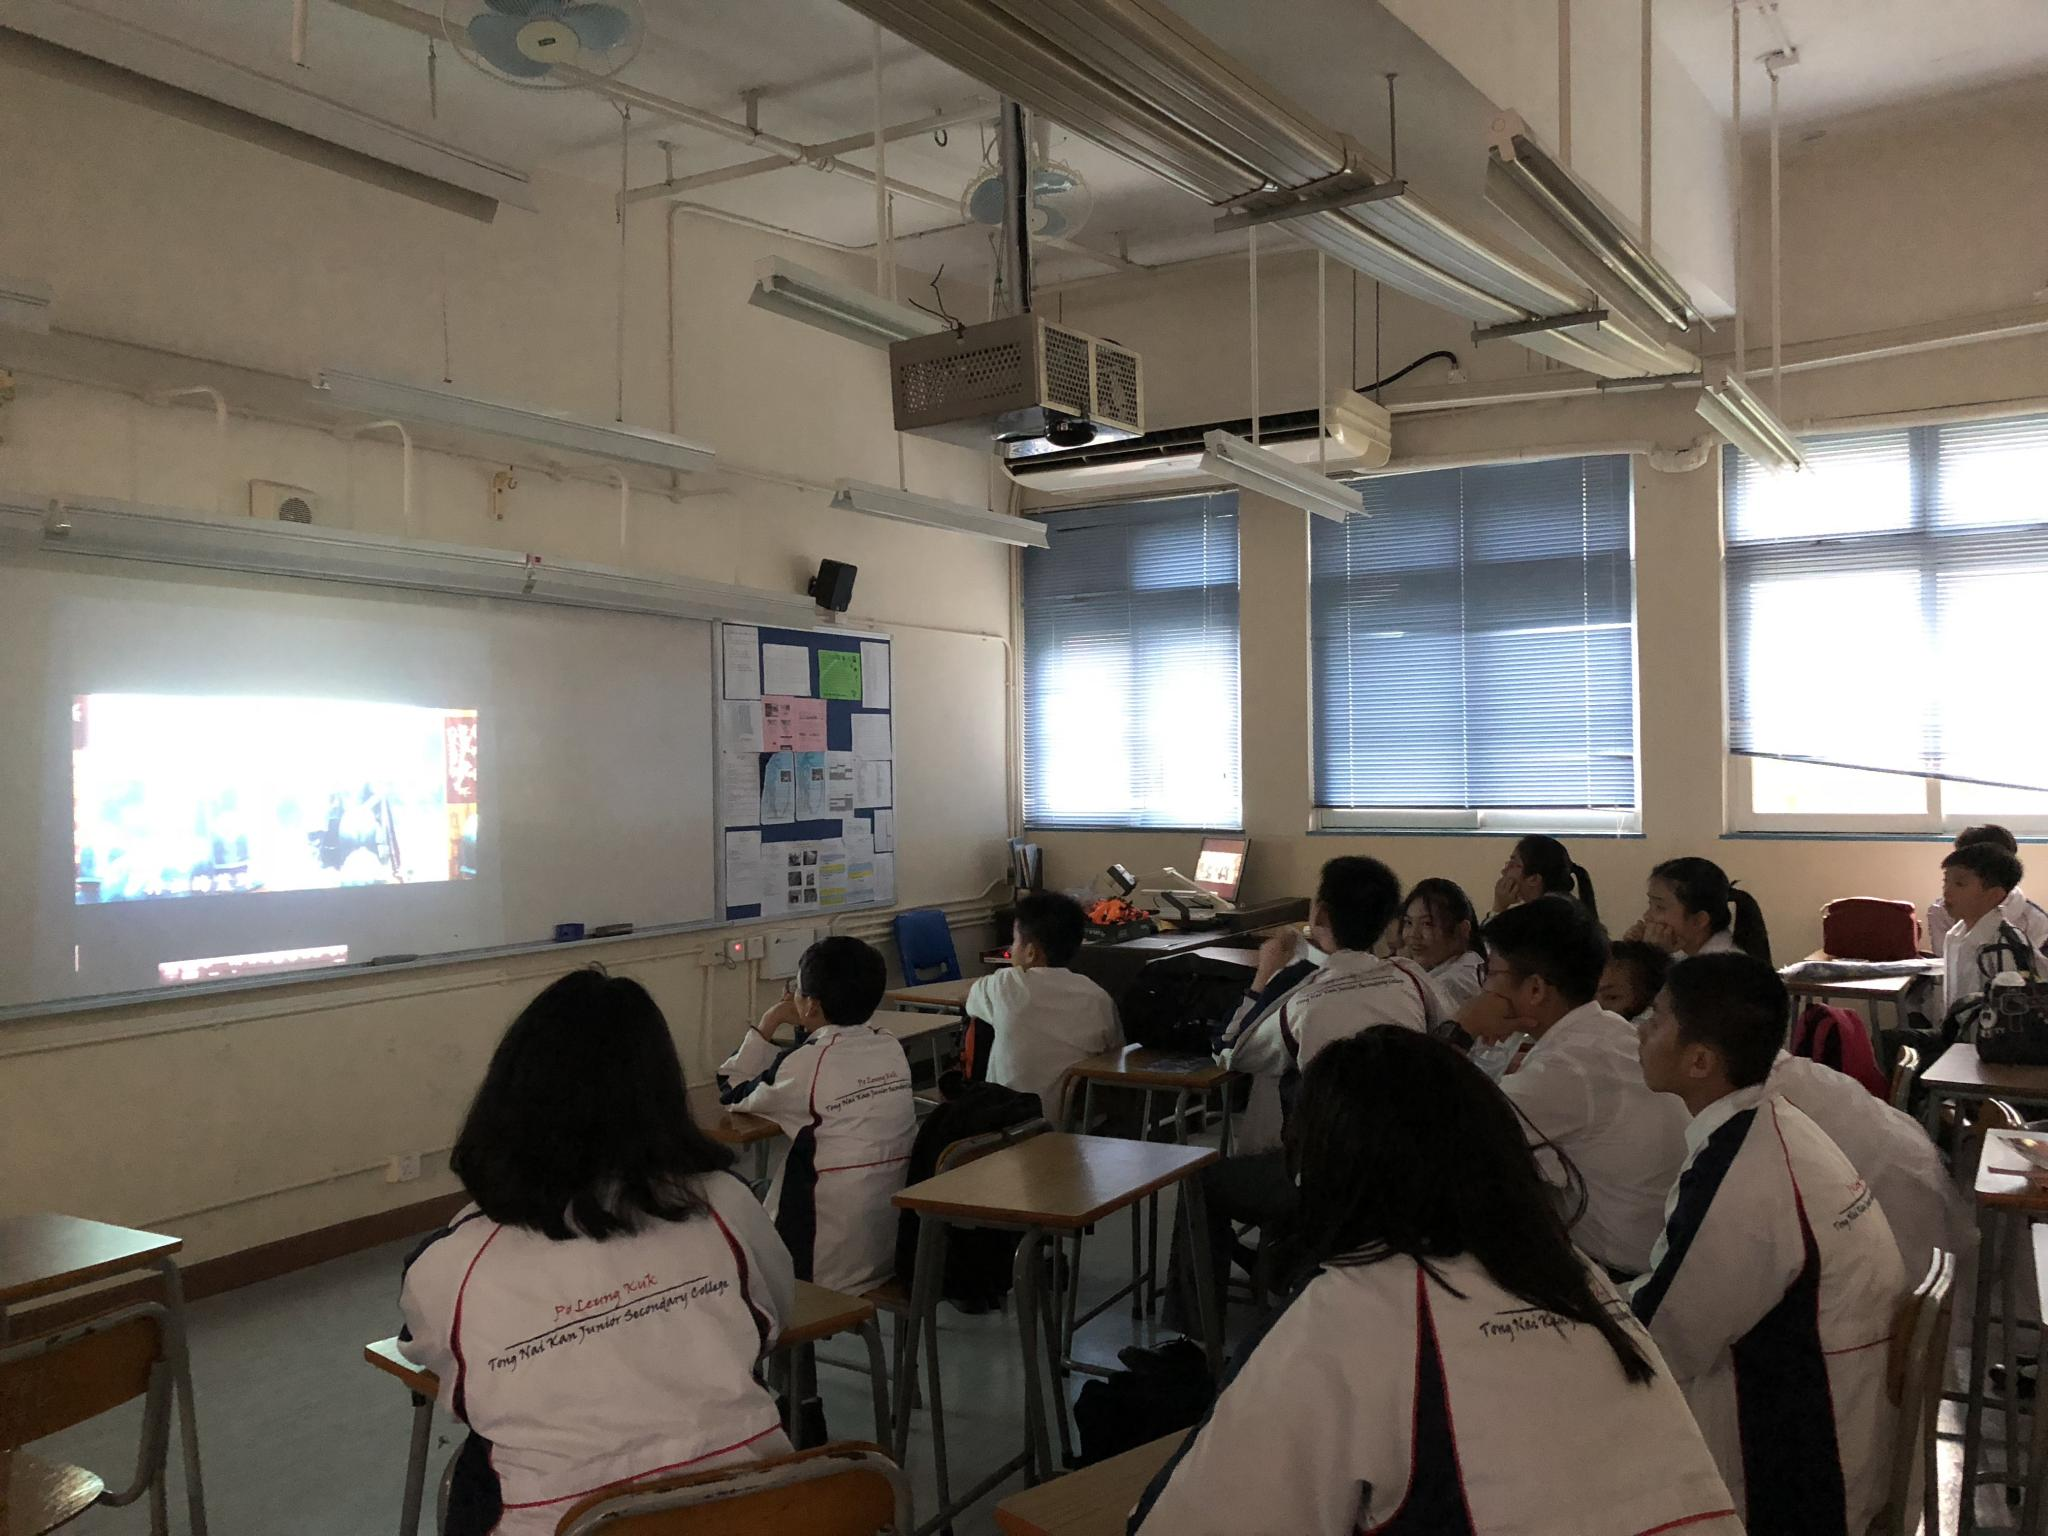 Students were watching the movie 'Maleficent' intently.